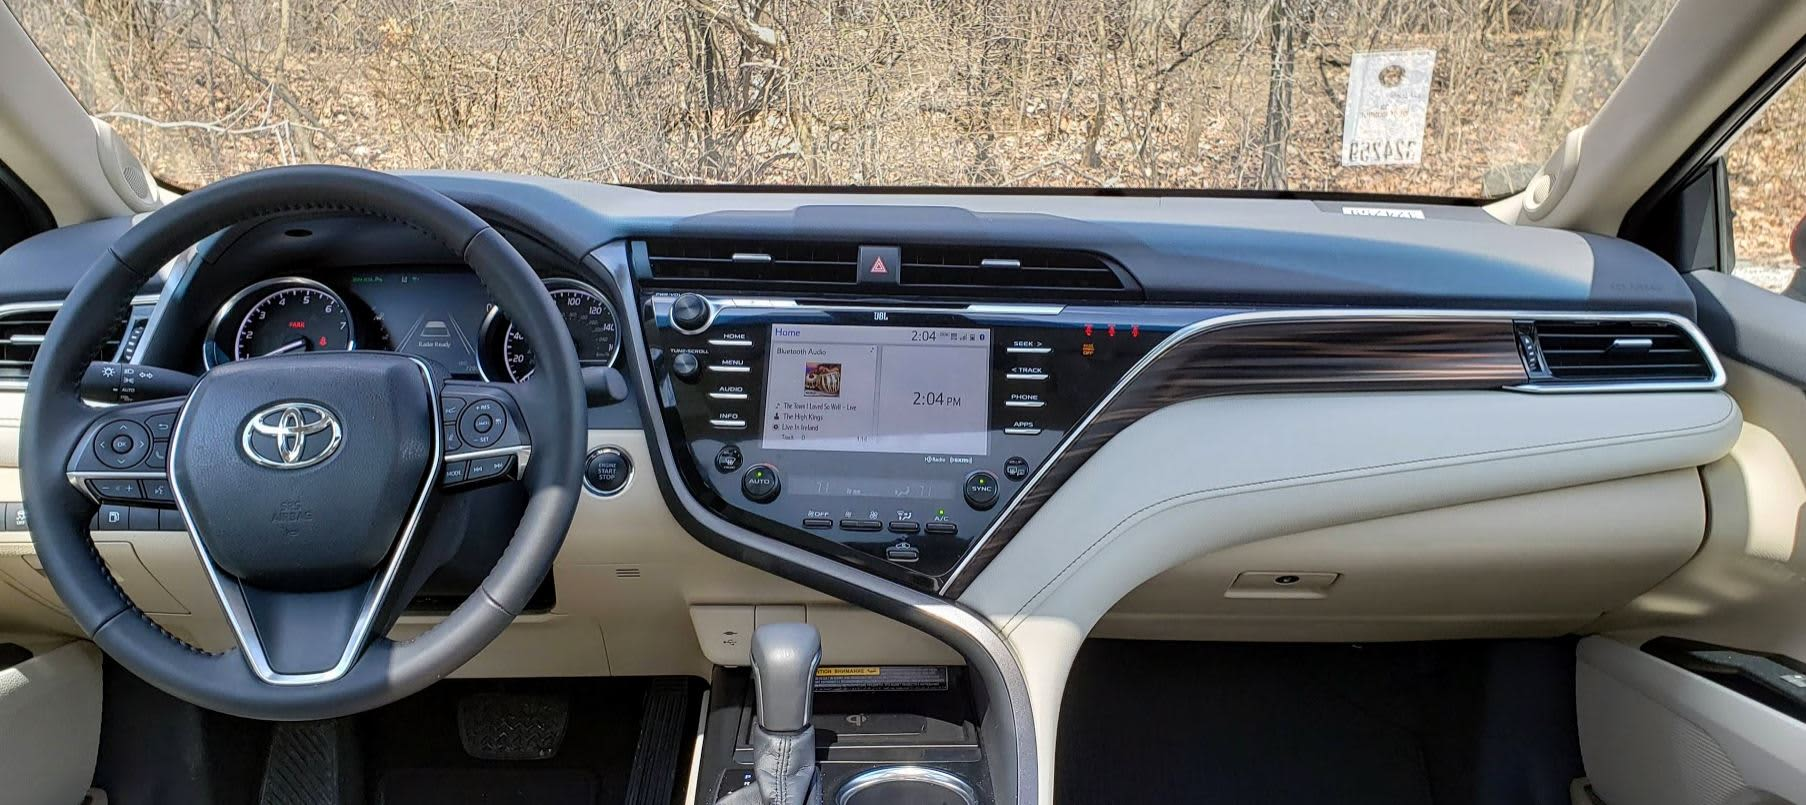 2018 Toyota Camry Review Nearly Perfect Here Remote Sun Spot Will Send Data To On Car Which